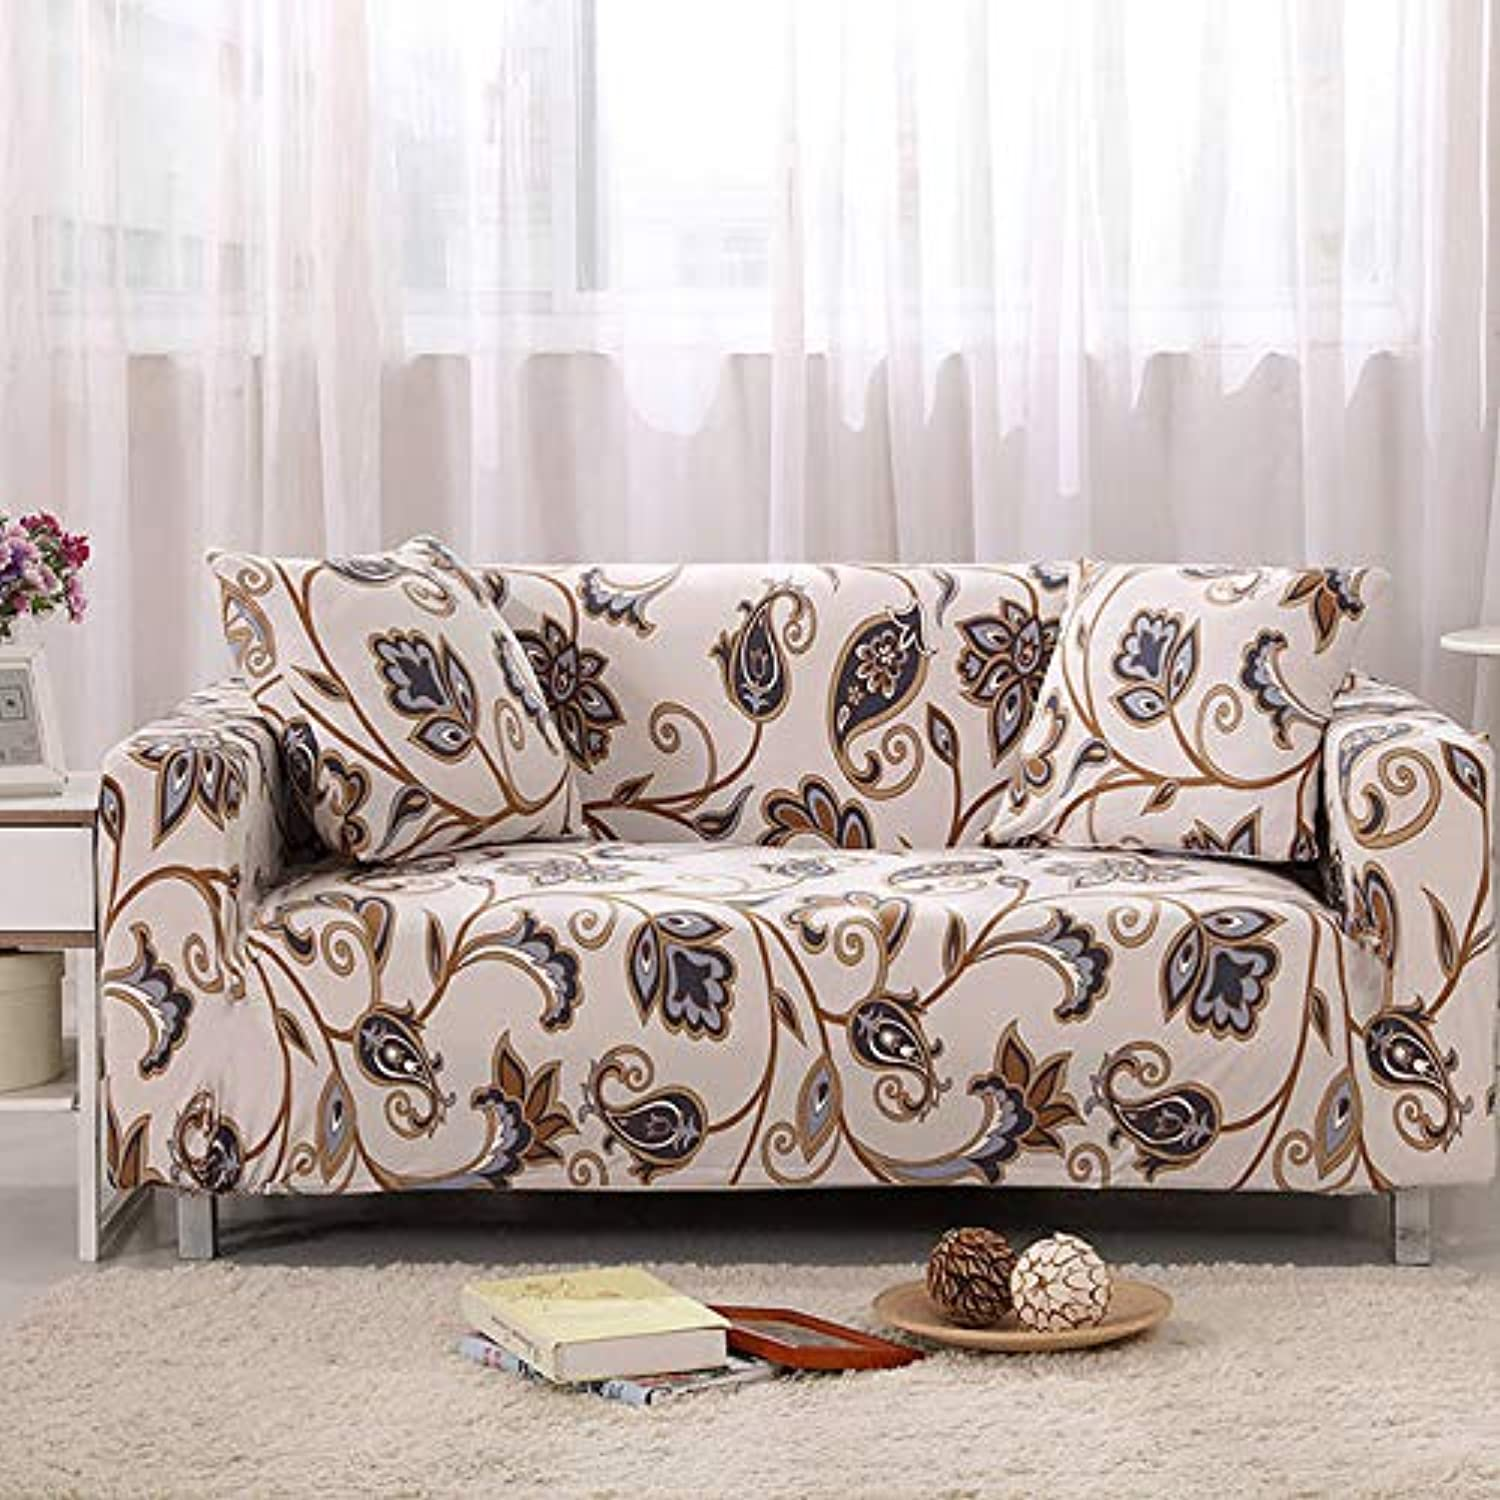 Floral Printing Stretch Slipcovers Elastic Stretch Sofa Cover for Living Room Couch Cover L Shape Armchair Cover   colour16, 2-Seater 145-185cm